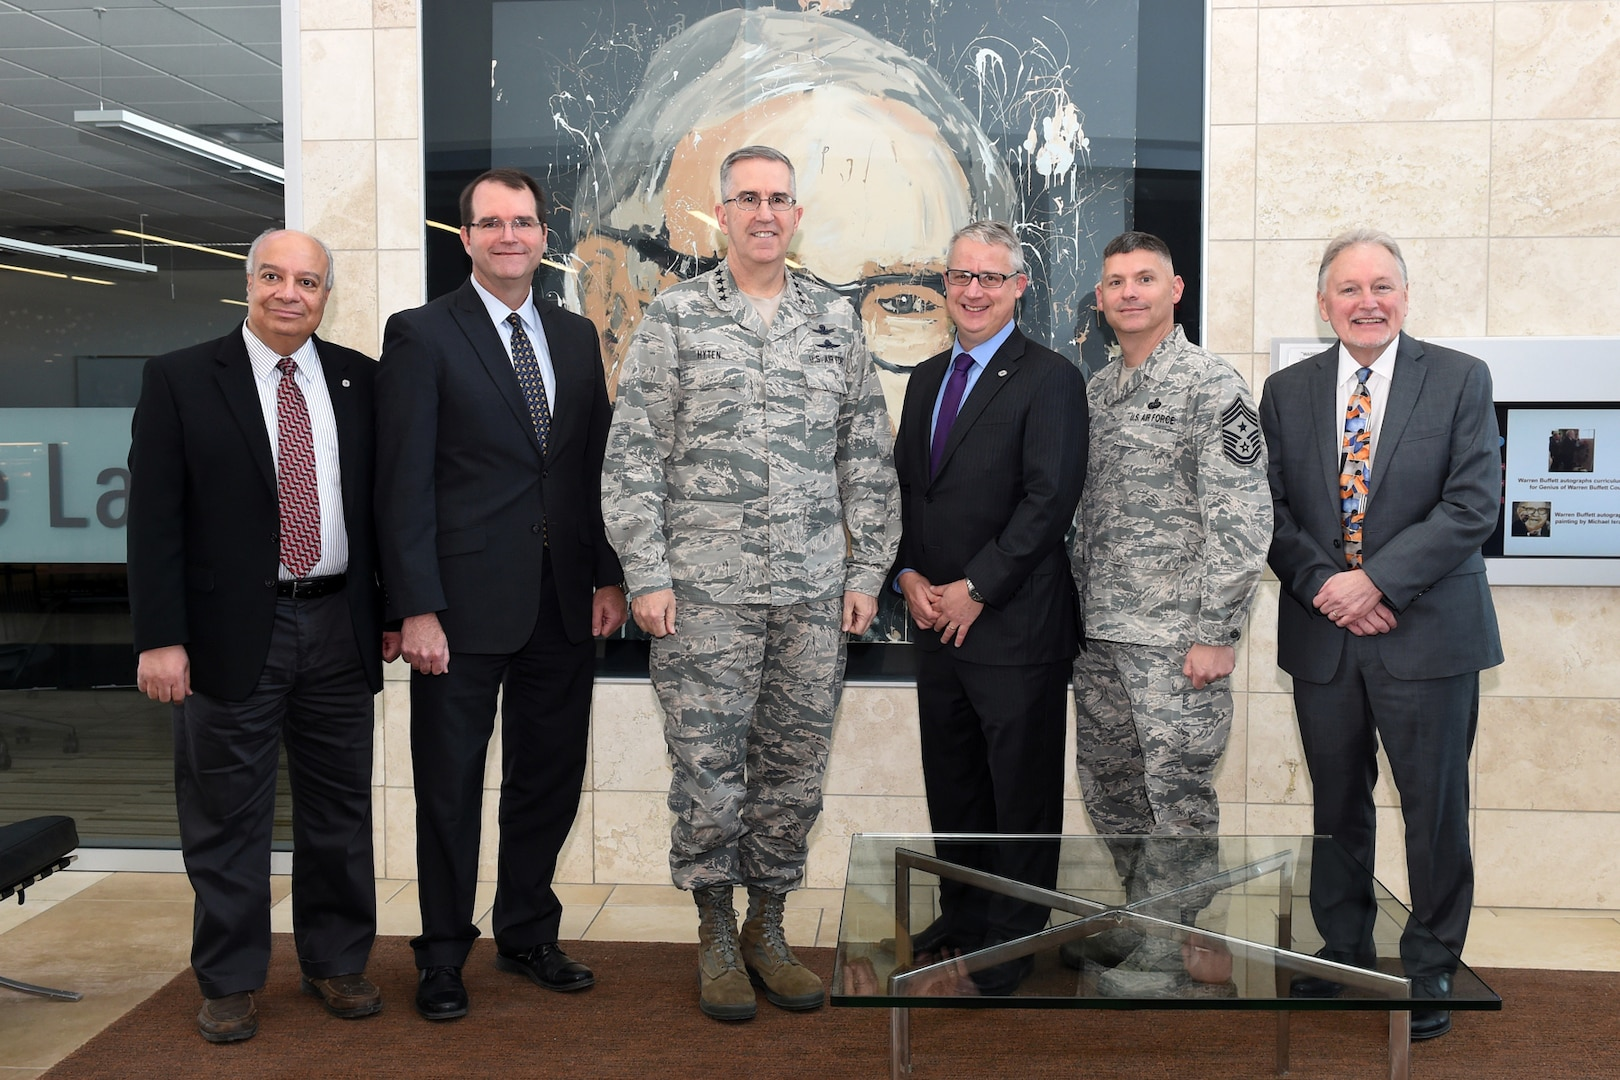 U.S. Air Force Gen. John Hyten (center), commander of U.S. Strategic Command (USSTRATCOM), met with University of Nebraska Omaha (UNO) leadership prior to a brown-bag lunch with USSTRATCOM Strategic Leadership Fellows Program participants at UNO's Mammel Hall, Jan. 24, 2017. From left, Hesham Ali, UNO dean of the college of information science and technology; James M. Taylor Jr., USSTRATCOM Strategic Leadership Fellows Program director; Gen. Hyten; Scott Snyder, UNO vice chancellor for research; U.S. Air Force Chief Master Sgt. Patrick McMahon, senior enlisted leader of USSTRATCOM and Louis Pol, UNO dean of the college of business administration. The fellows program is designed to develop high-potential civilian leaders in support of USSTRATCOM organizational transformation, broaden mission awareness, and develop leadership skills. USSTRATCOM has global responsibilities assigned through the Unified Command Plan that include strategic deterrence, nuclear operations, space operations, joint electromagnetic spectrum operations, global strike, missile defense, and analysis and targeting.